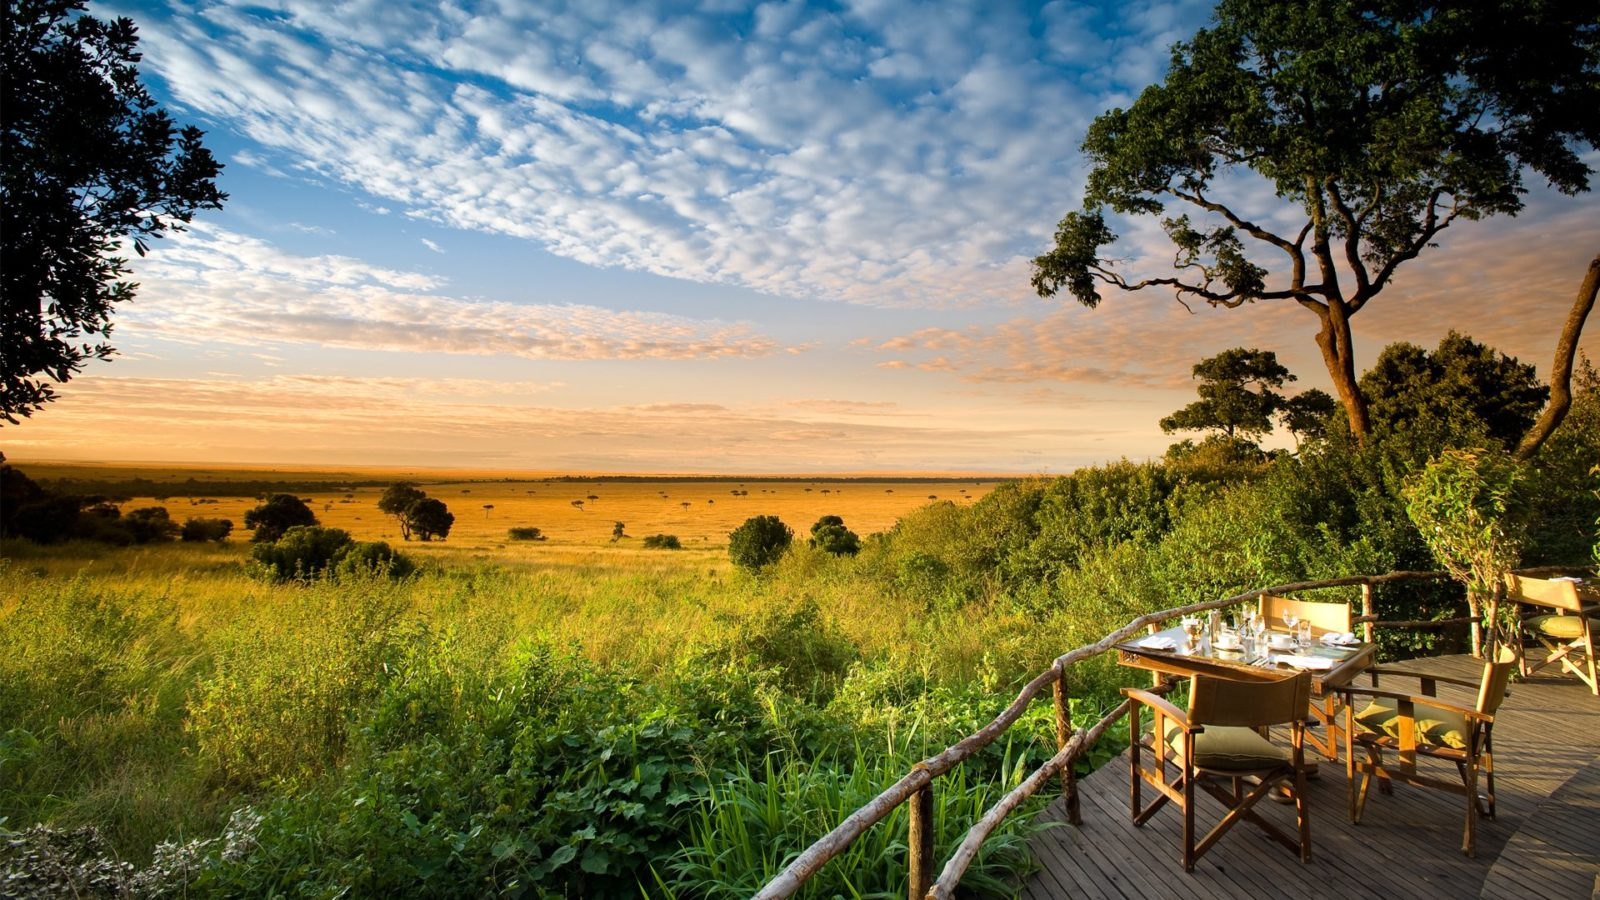 guest-area-with-golden-sunrise-at-andbeyond-bateleur-camp-on-a-luxury-kenya-safari1-1600x900.jpg